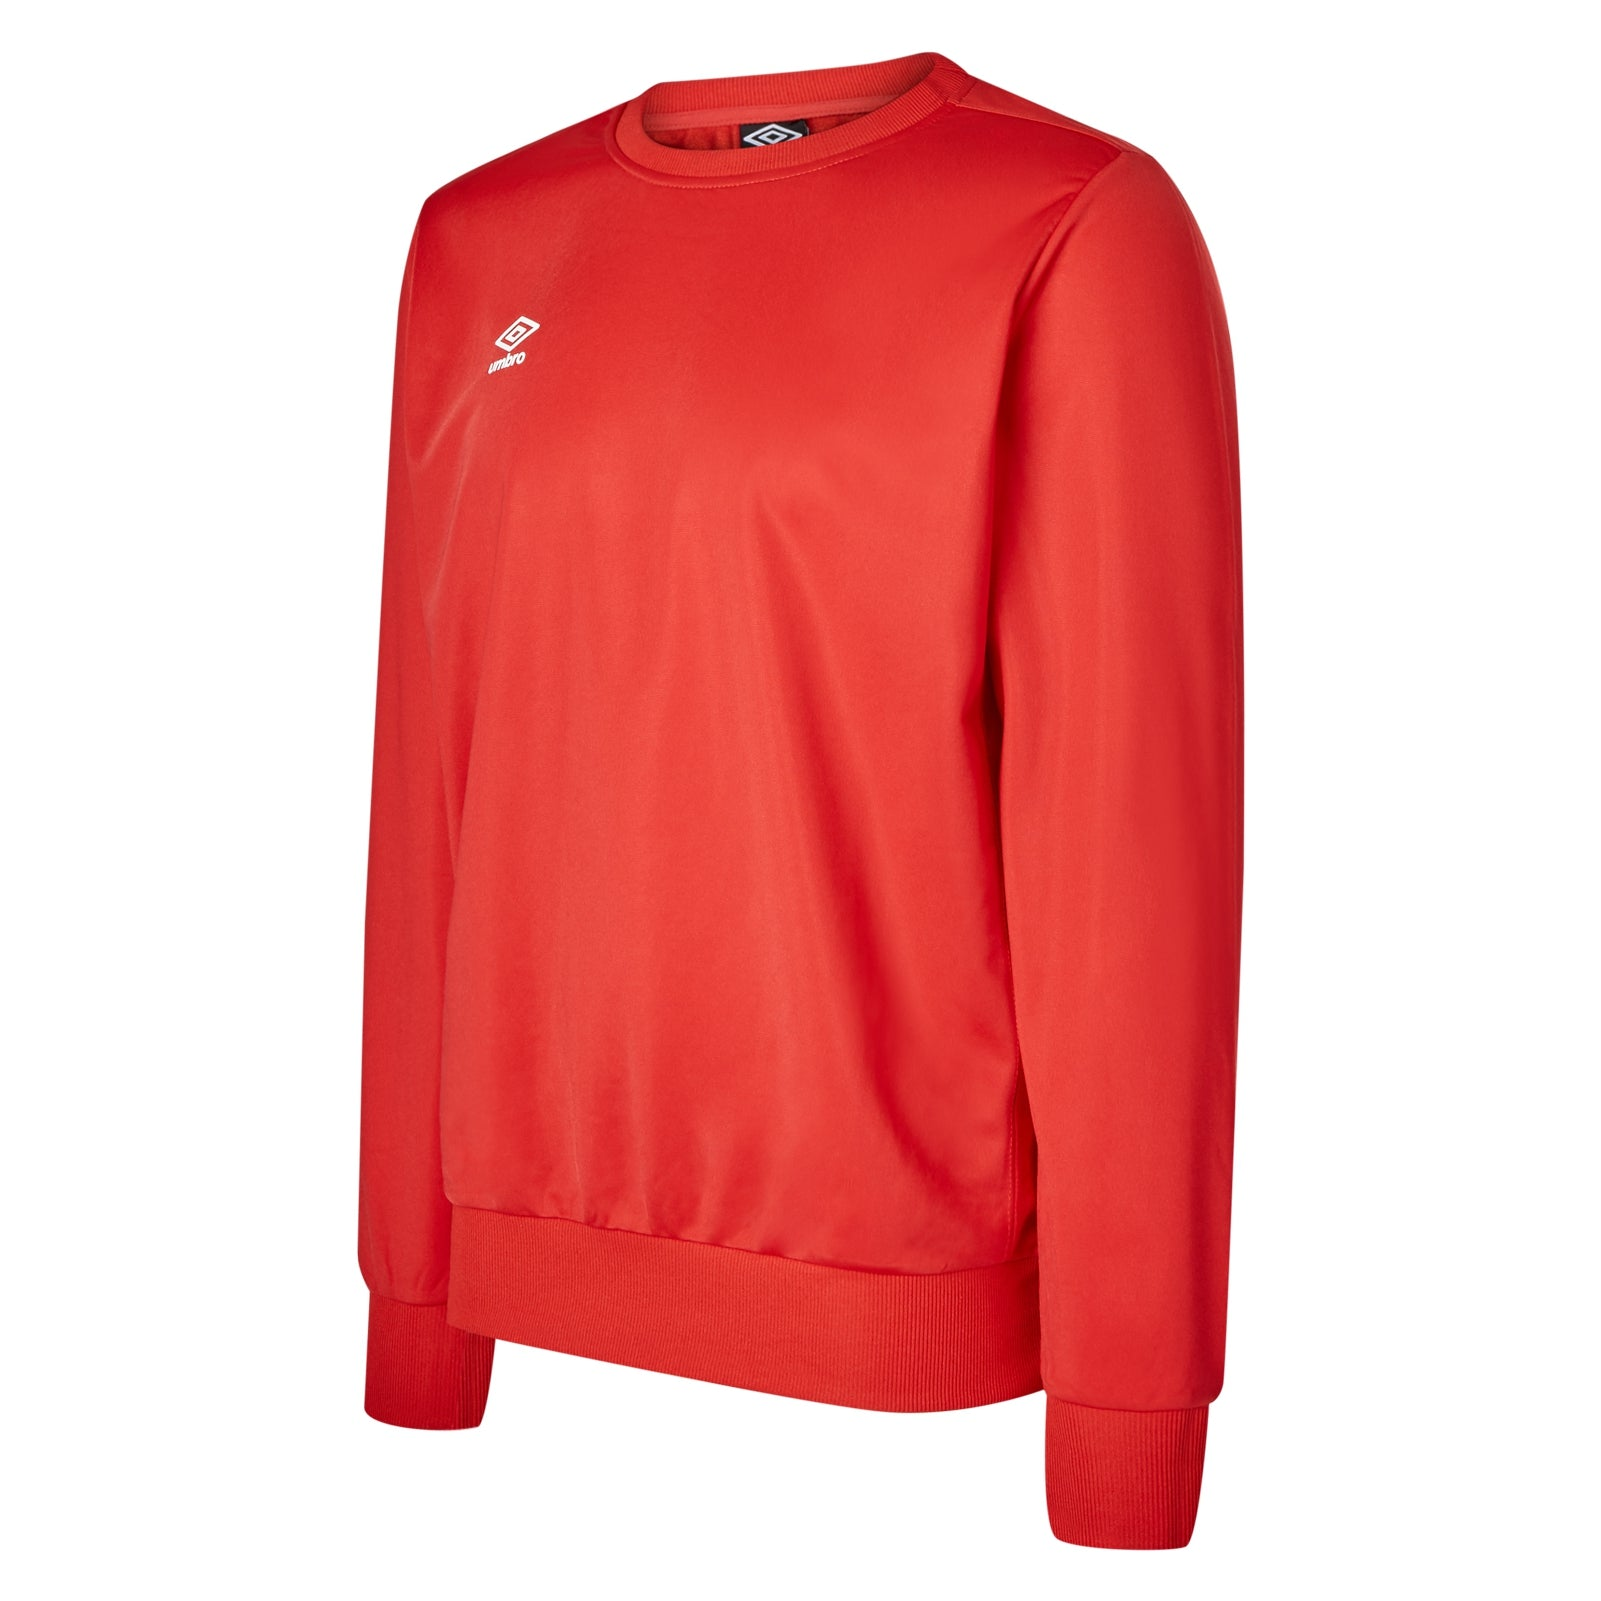 Umbro club Essential poly sweat in vermillion with white Diamond logo